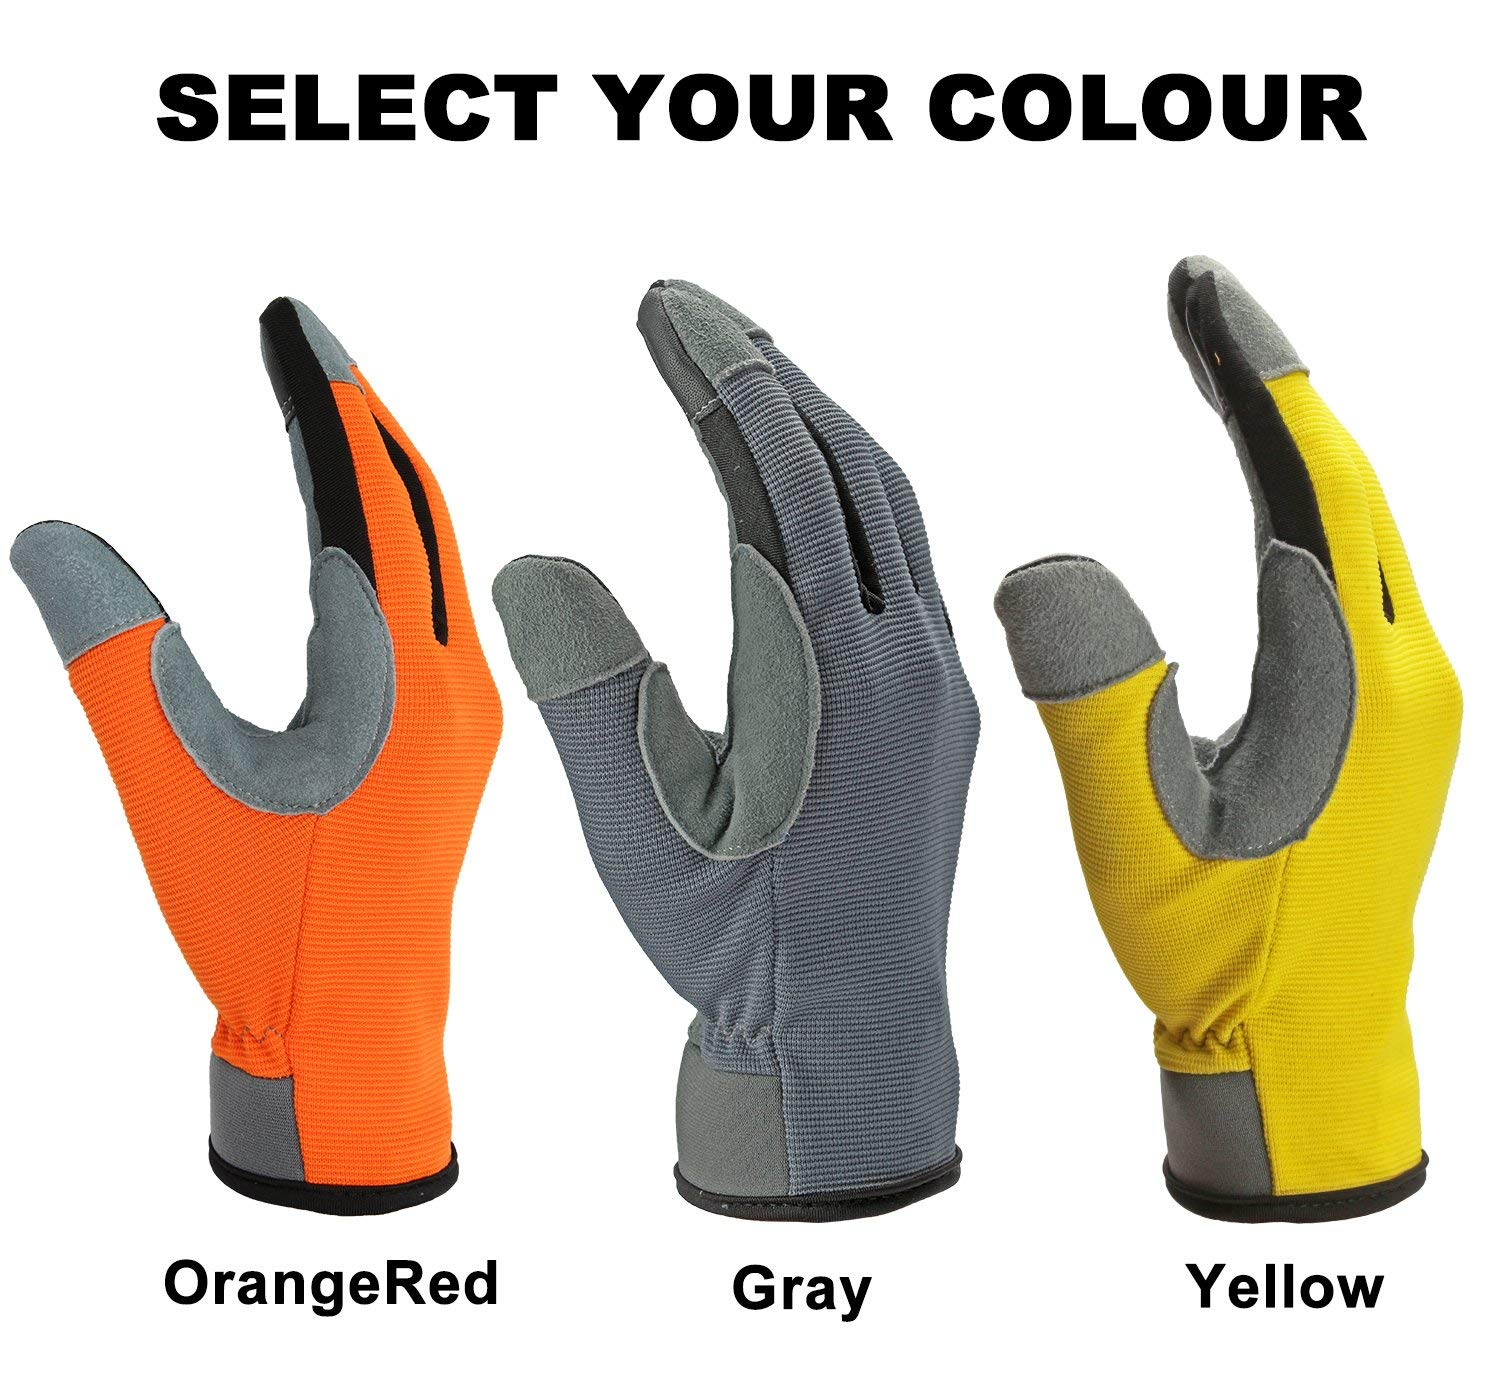 OZERO Work Gloves,Mens and Womens Touch Screen Deer Leather Gloves for Farm,Household Task and Gardening